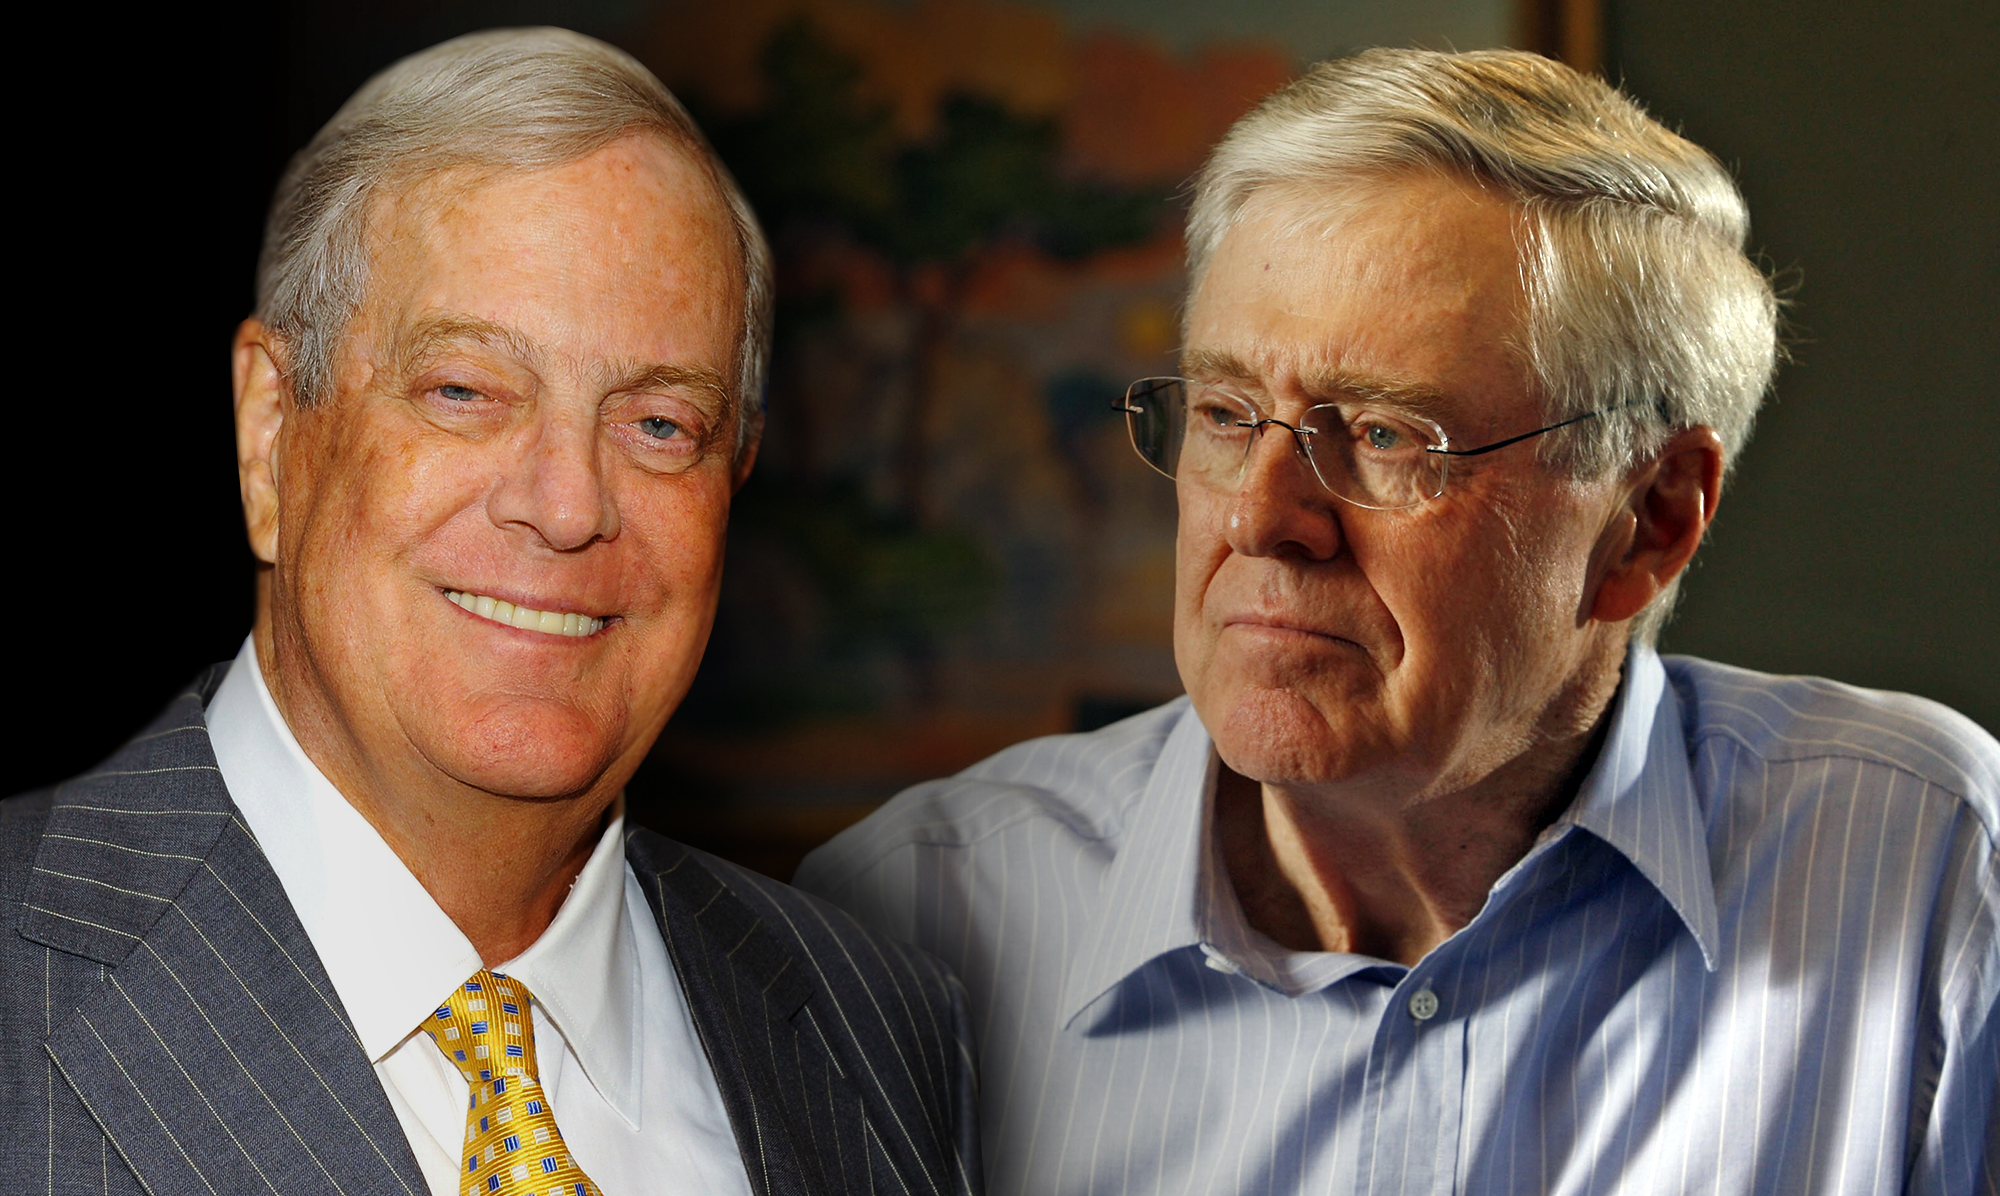 THE KOCH BROTHERS (KOCH INDUSTRIES CORPORATE LEADERS)